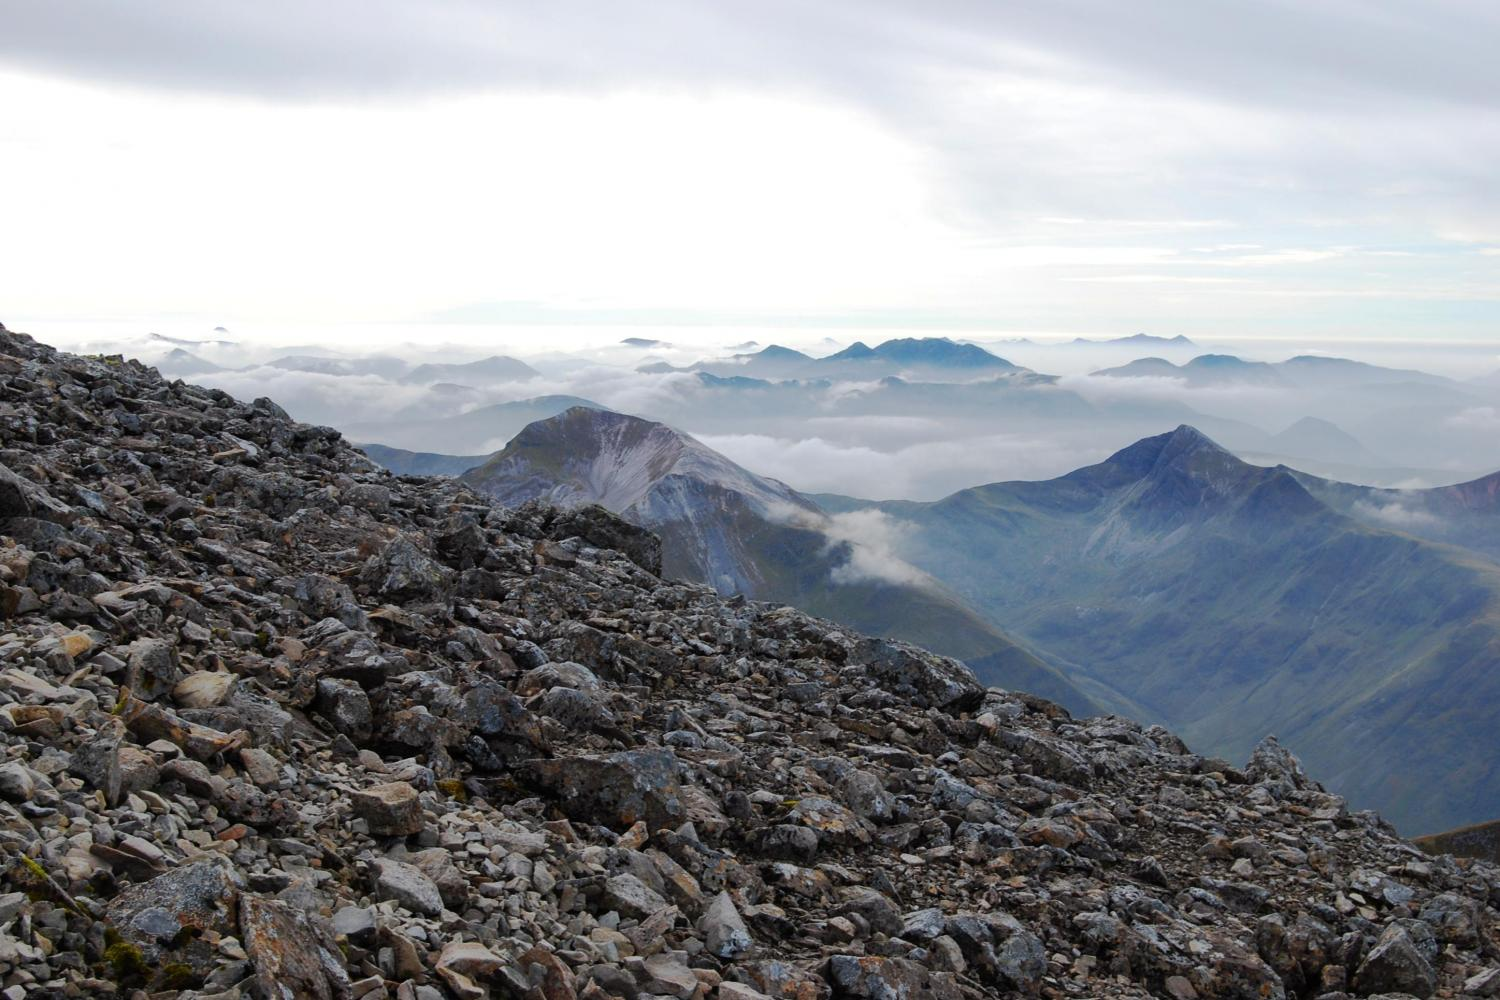 The 5 Day 3 Peaks Challenge